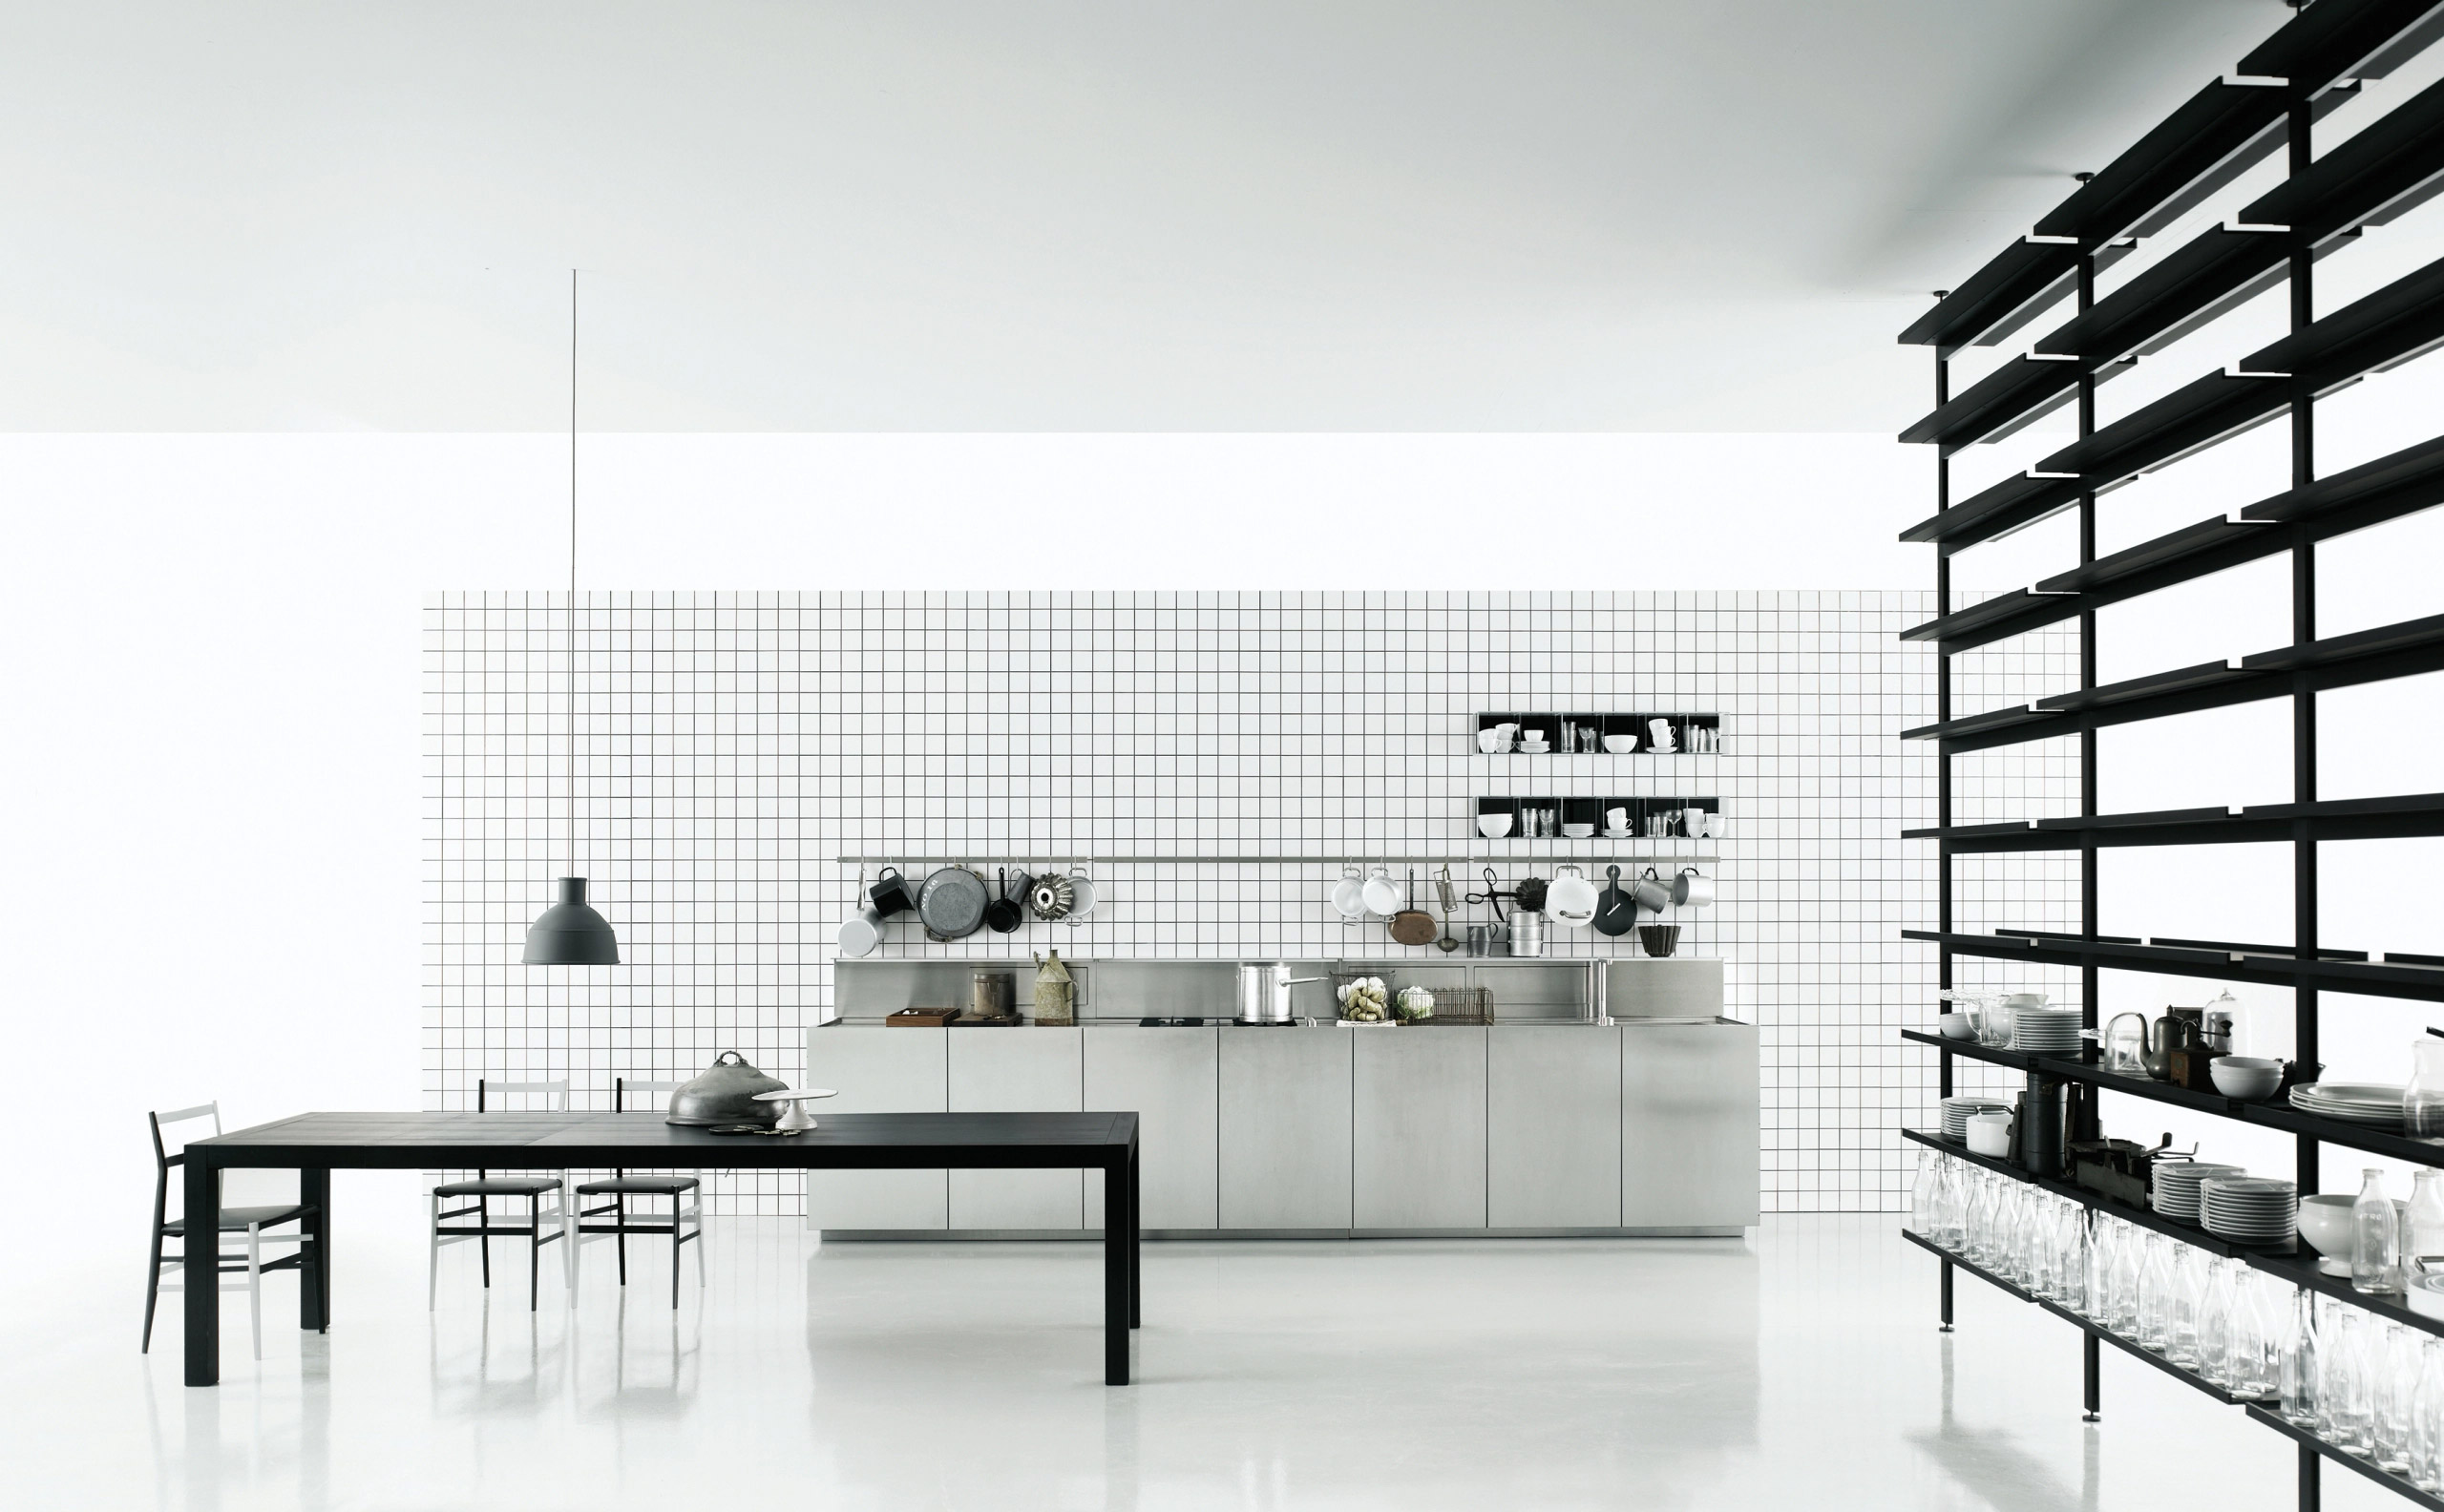 Cuisine Boffi Boffi Italian Design For Kitchens And Bathrooms Pedro Peña